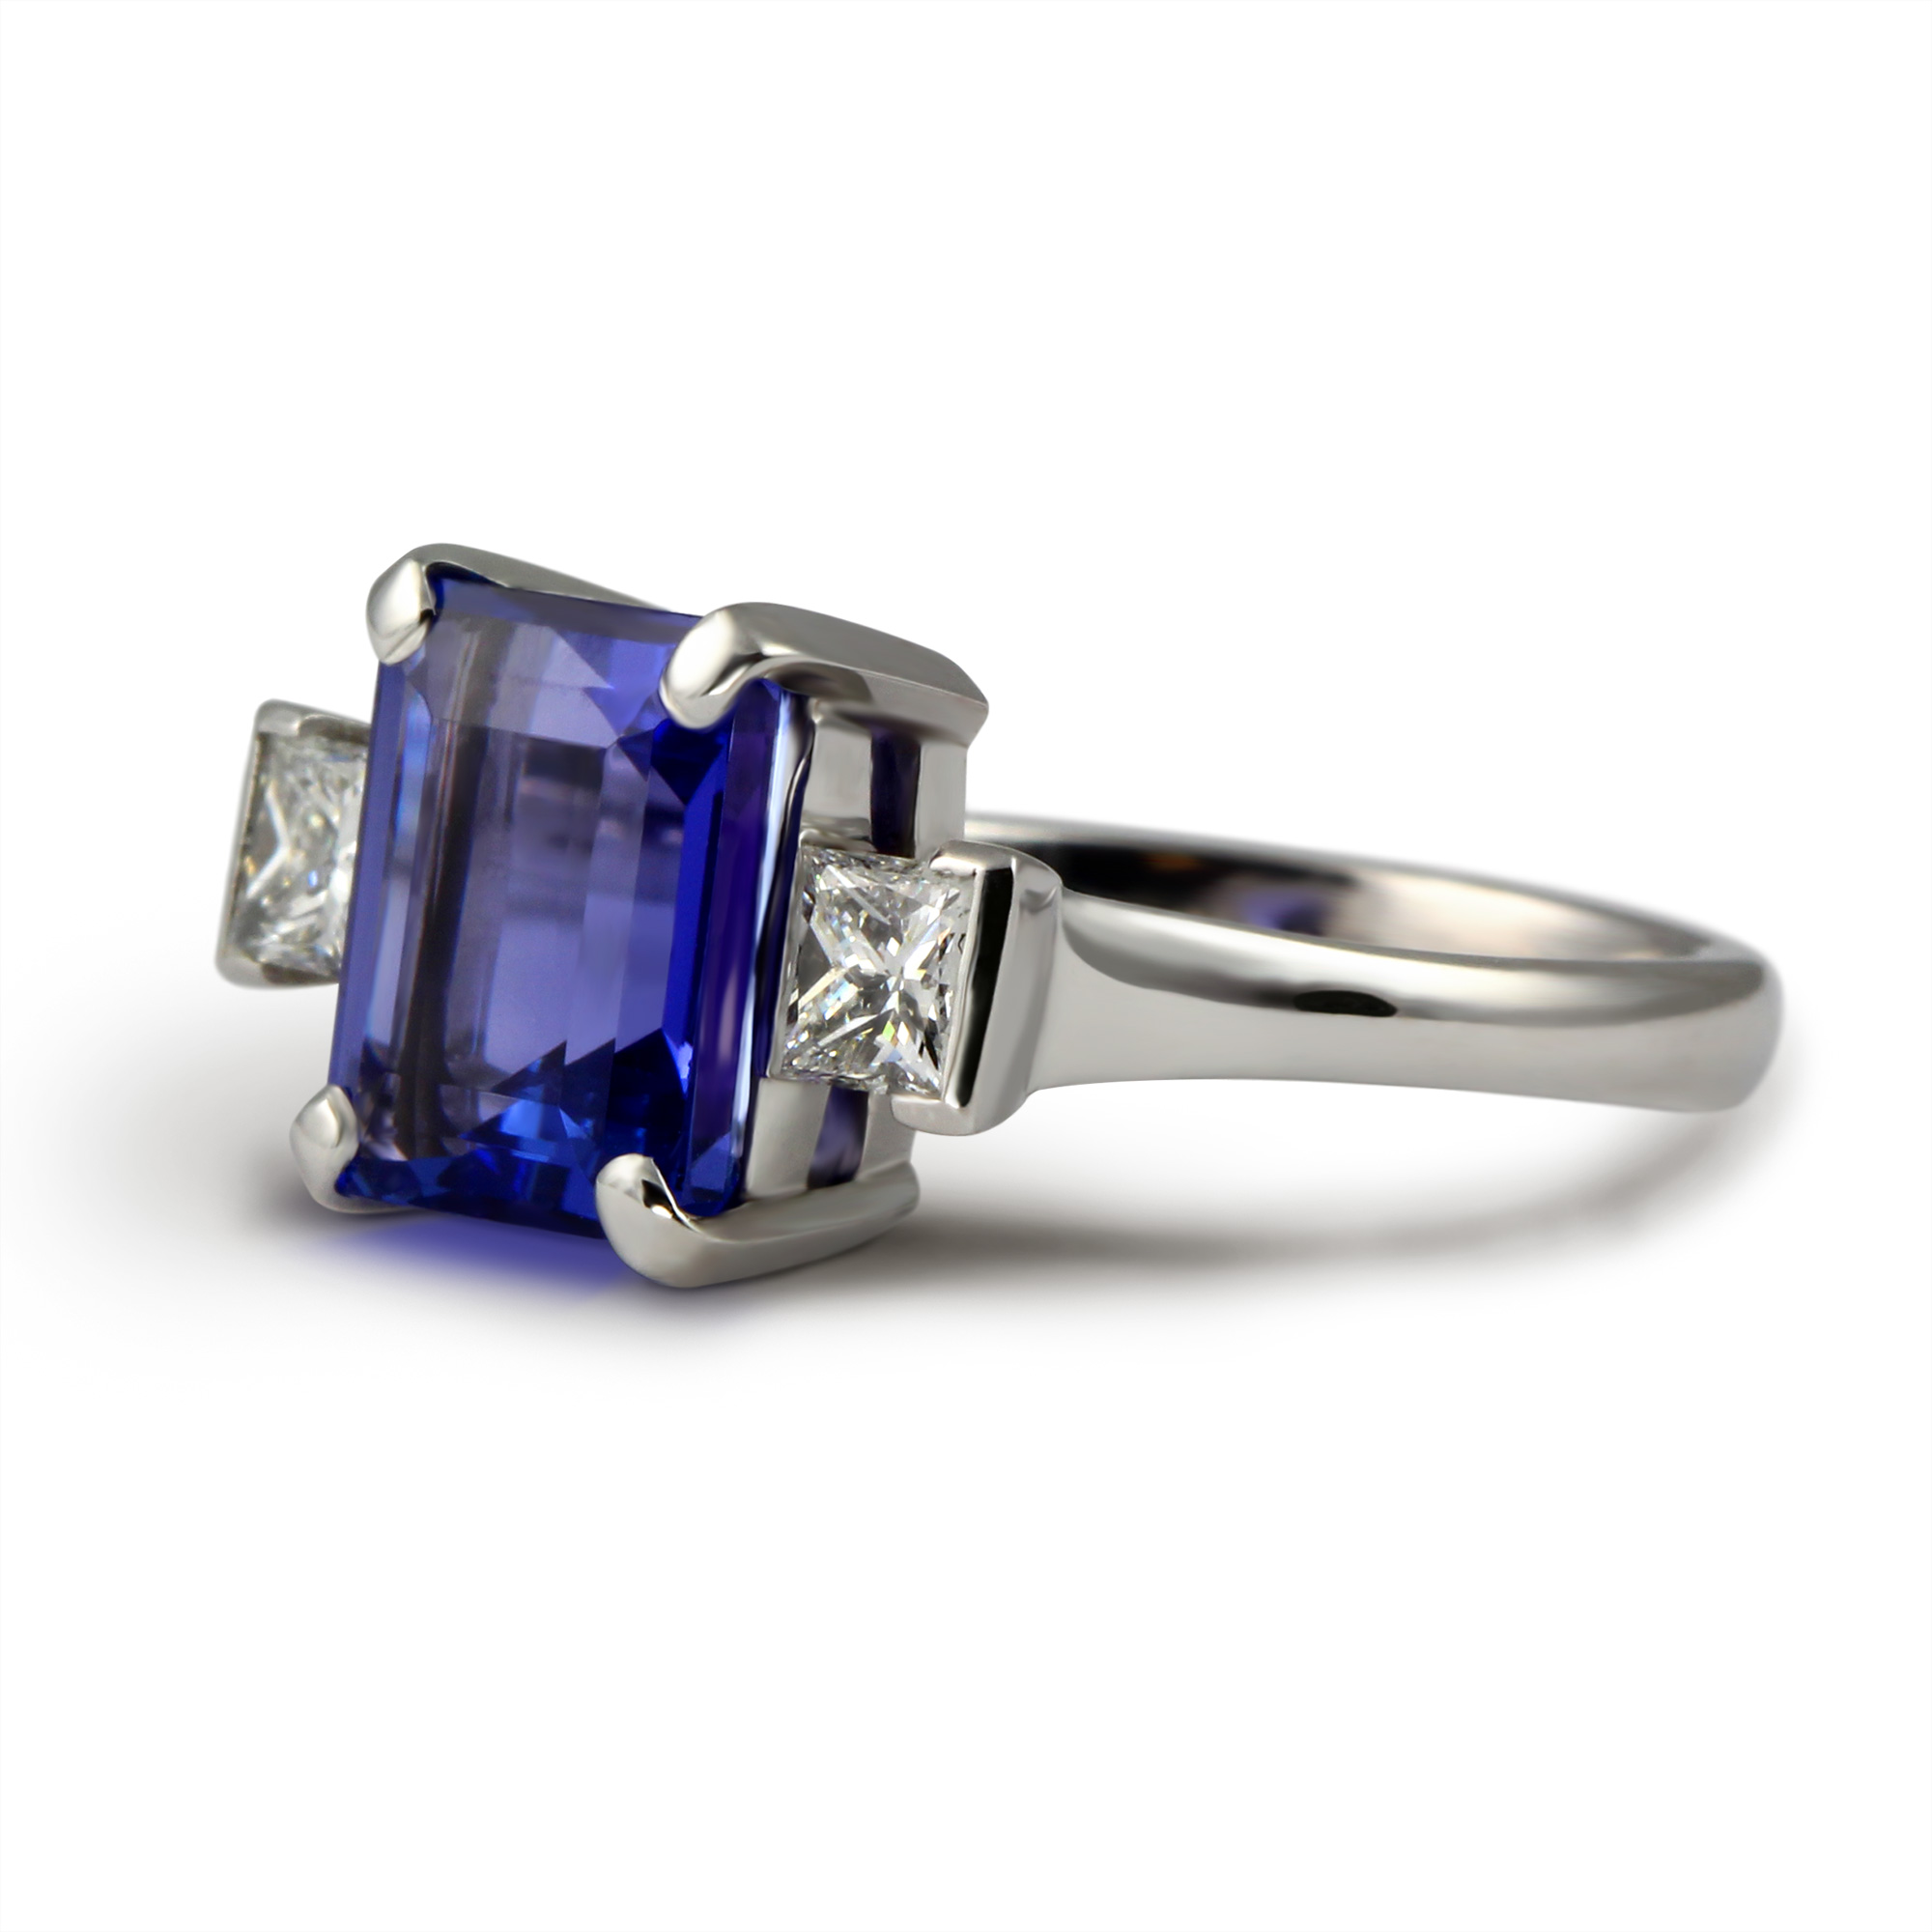 either diamond each princess silver bypass the shanks other double best and cut elegant sets piece wedding on miadora side tanzanite tdw of ring sterling